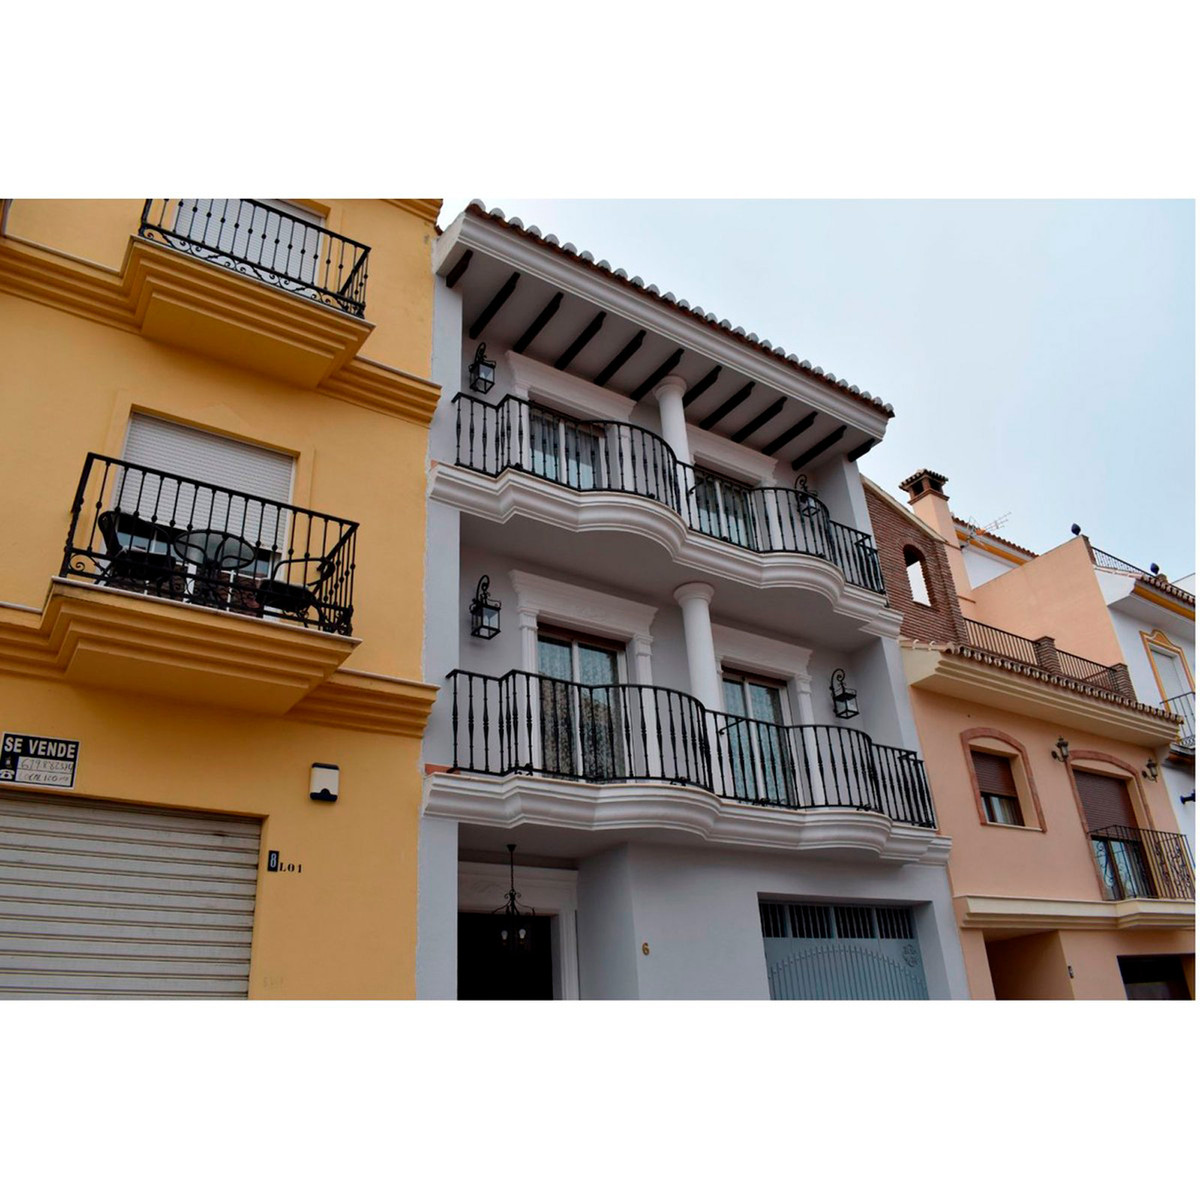 FANTASTIC TOWNHOUSE SITUATED IN CENTRAL AREA OF ALHAURIN EL GRANDE CLOSE TO ALL AMENITIES, ON THE GR,Spain